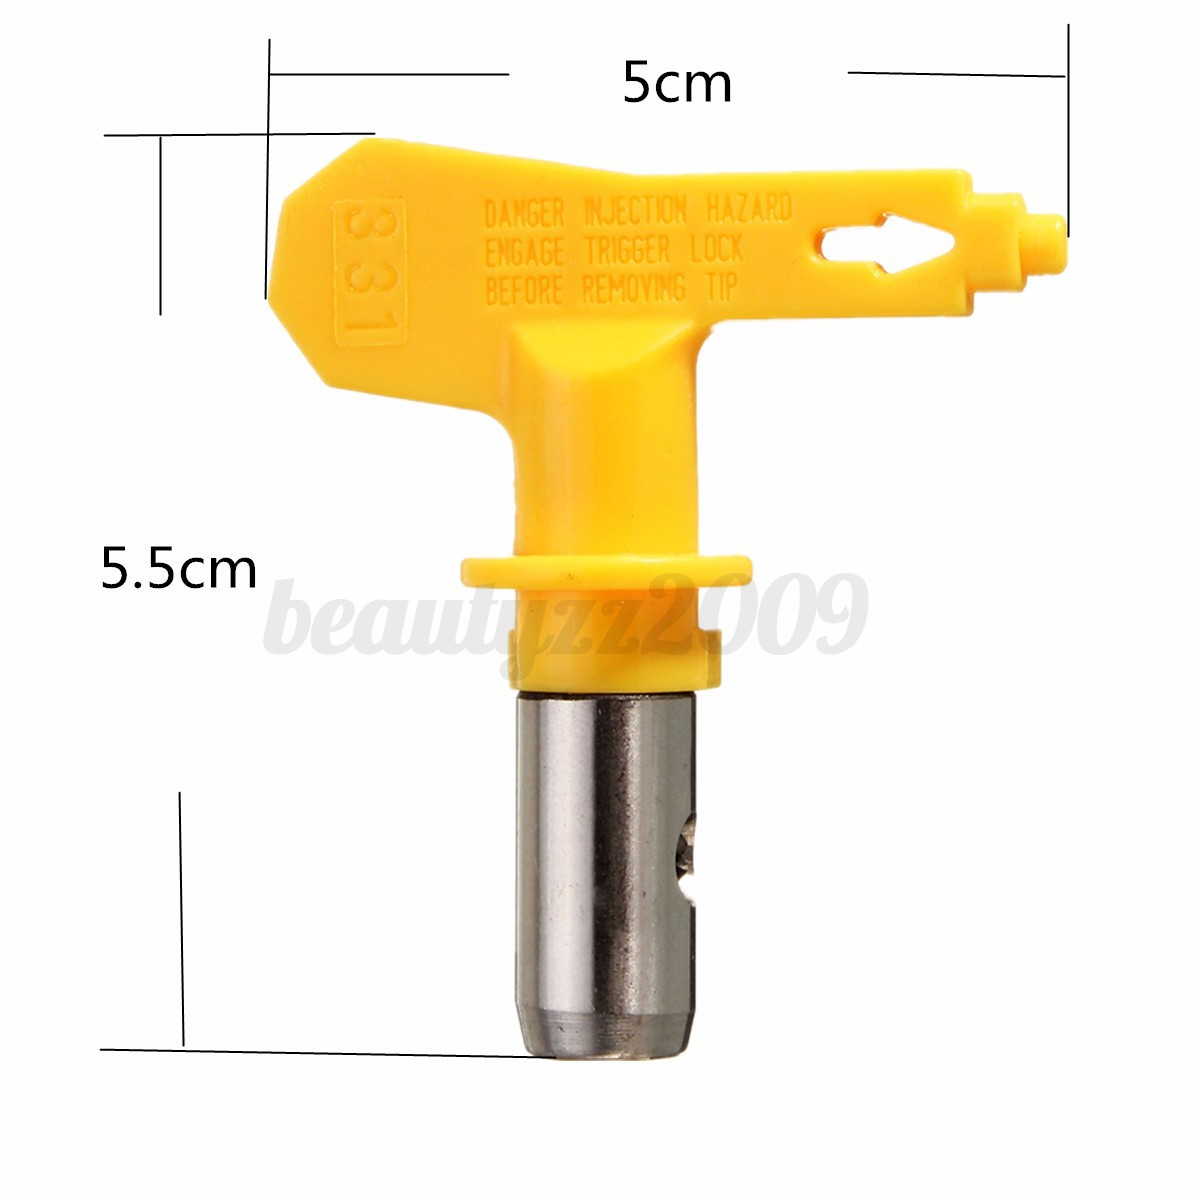 spray tip for graco titan wagner airless spray gun and paint sprayer. Black Bedroom Furniture Sets. Home Design Ideas